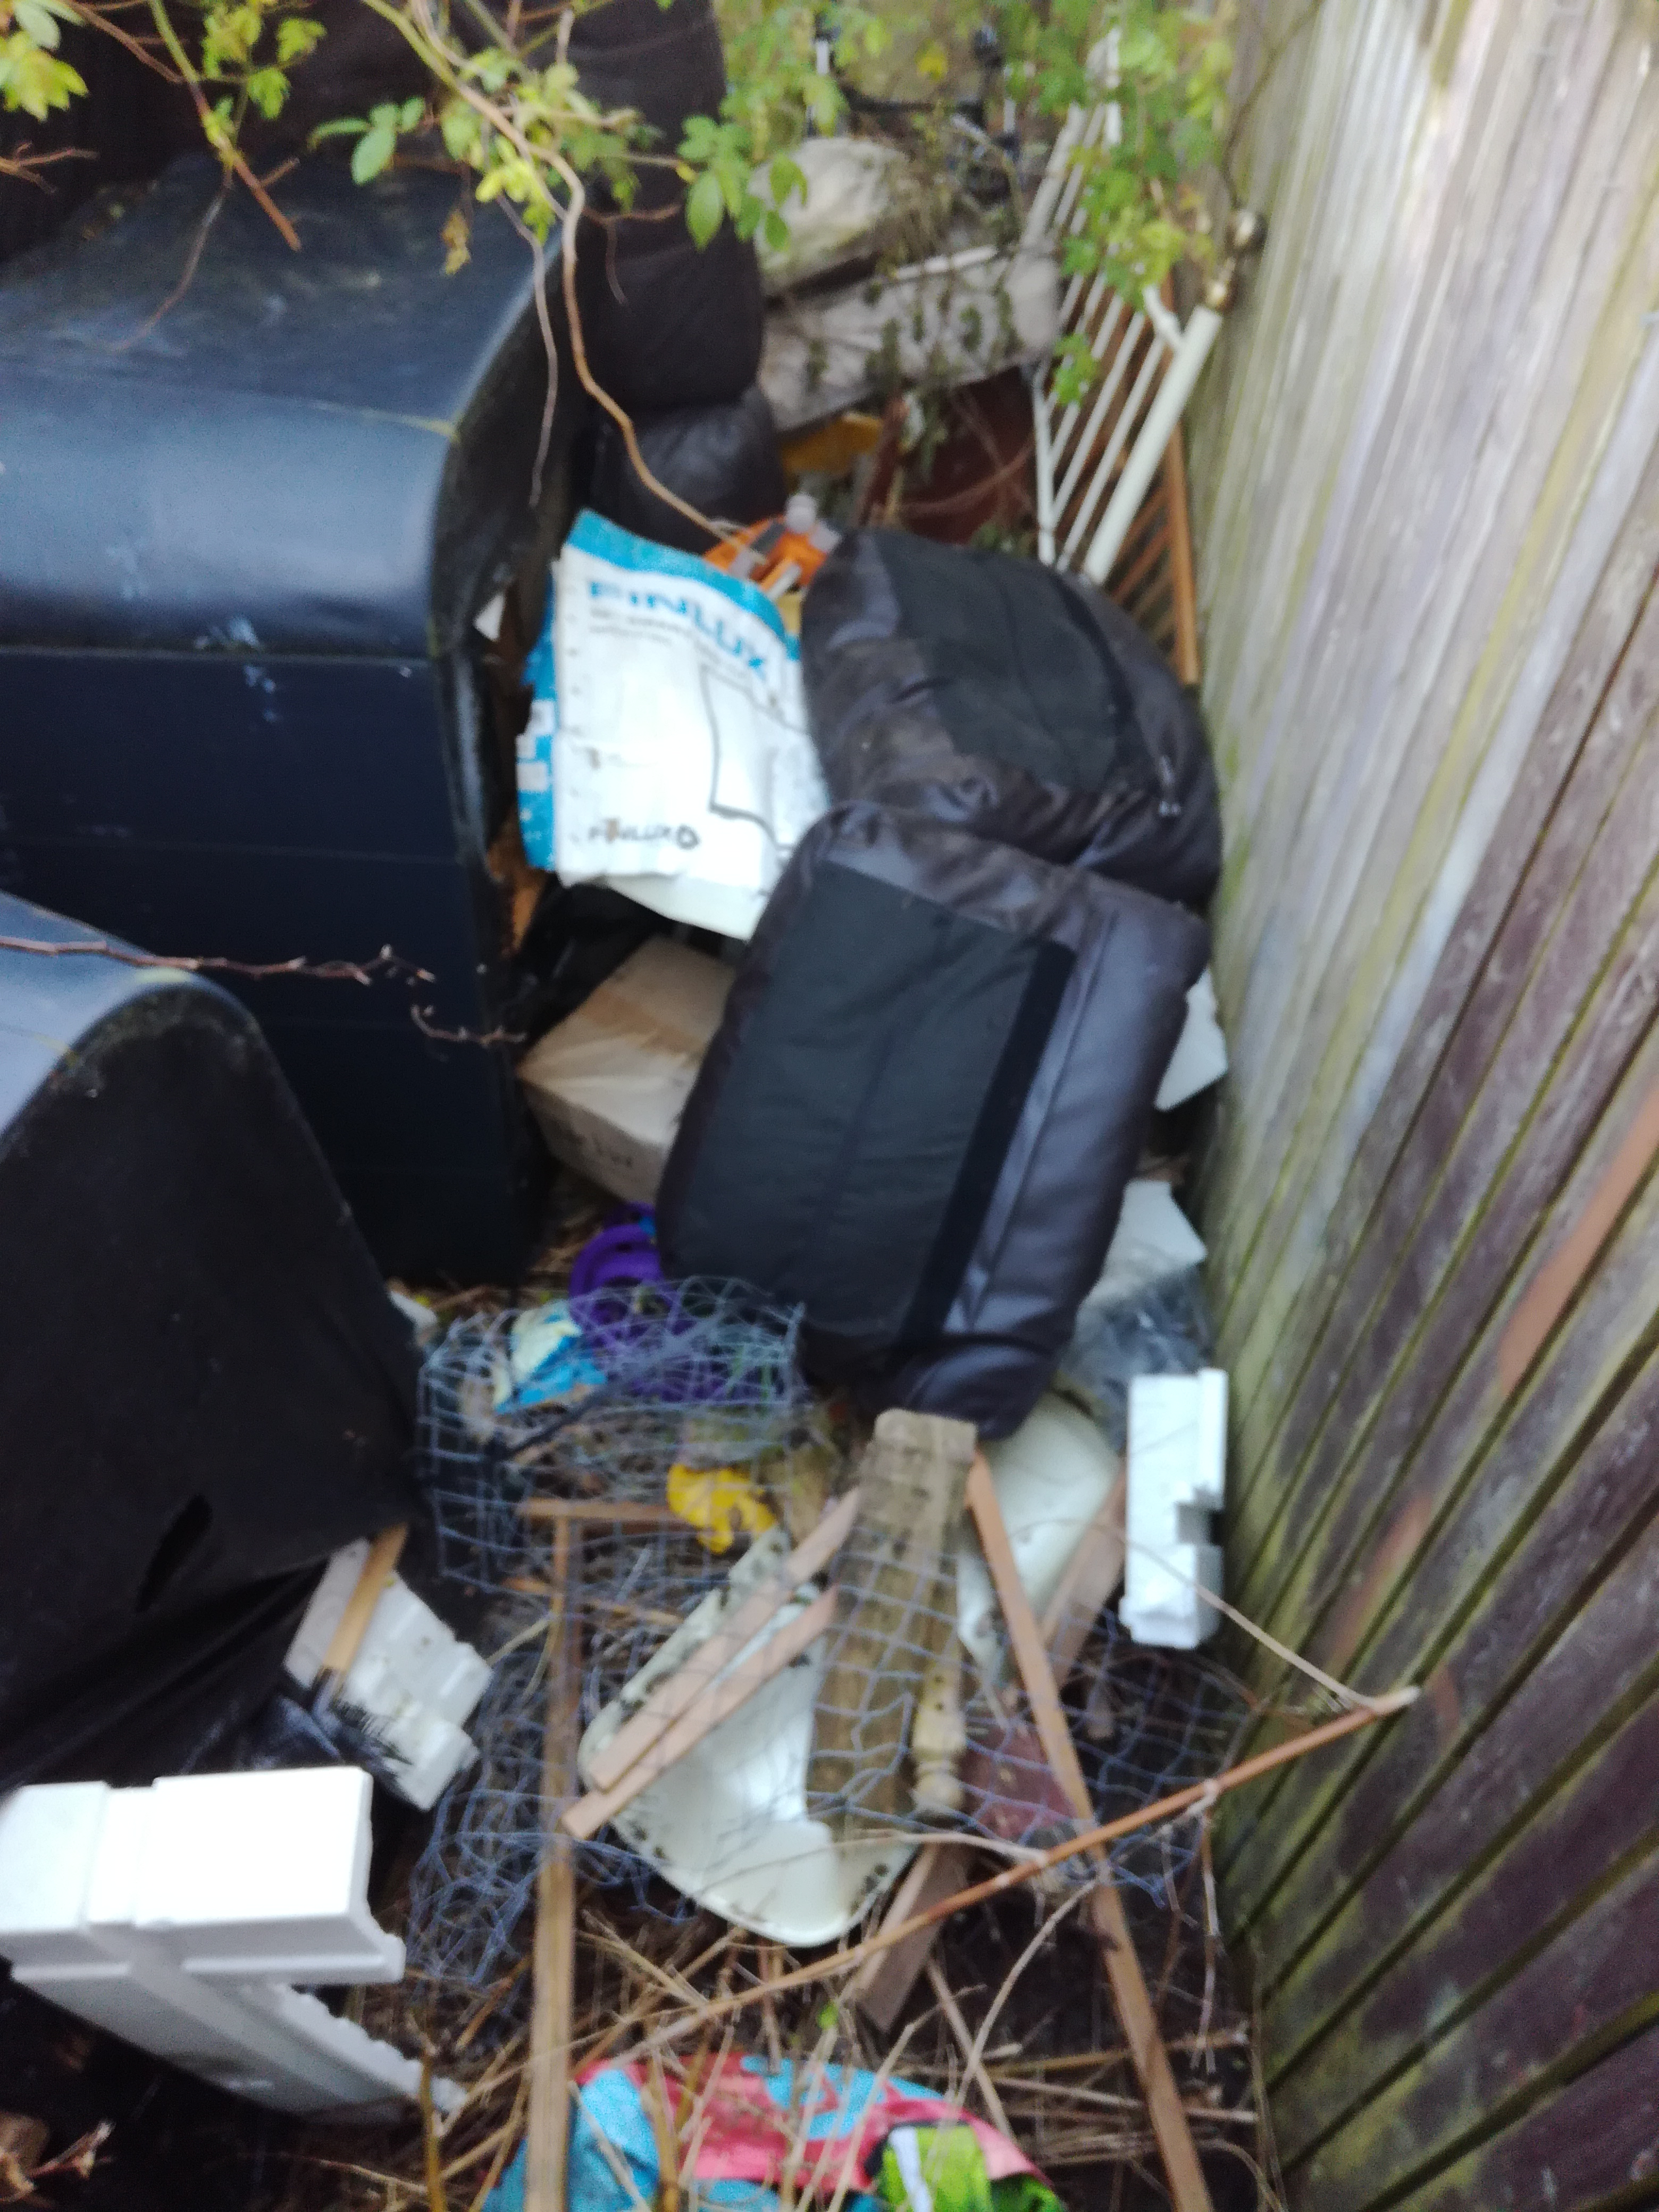 'Council took months to clean up rubbish dumped in our street'